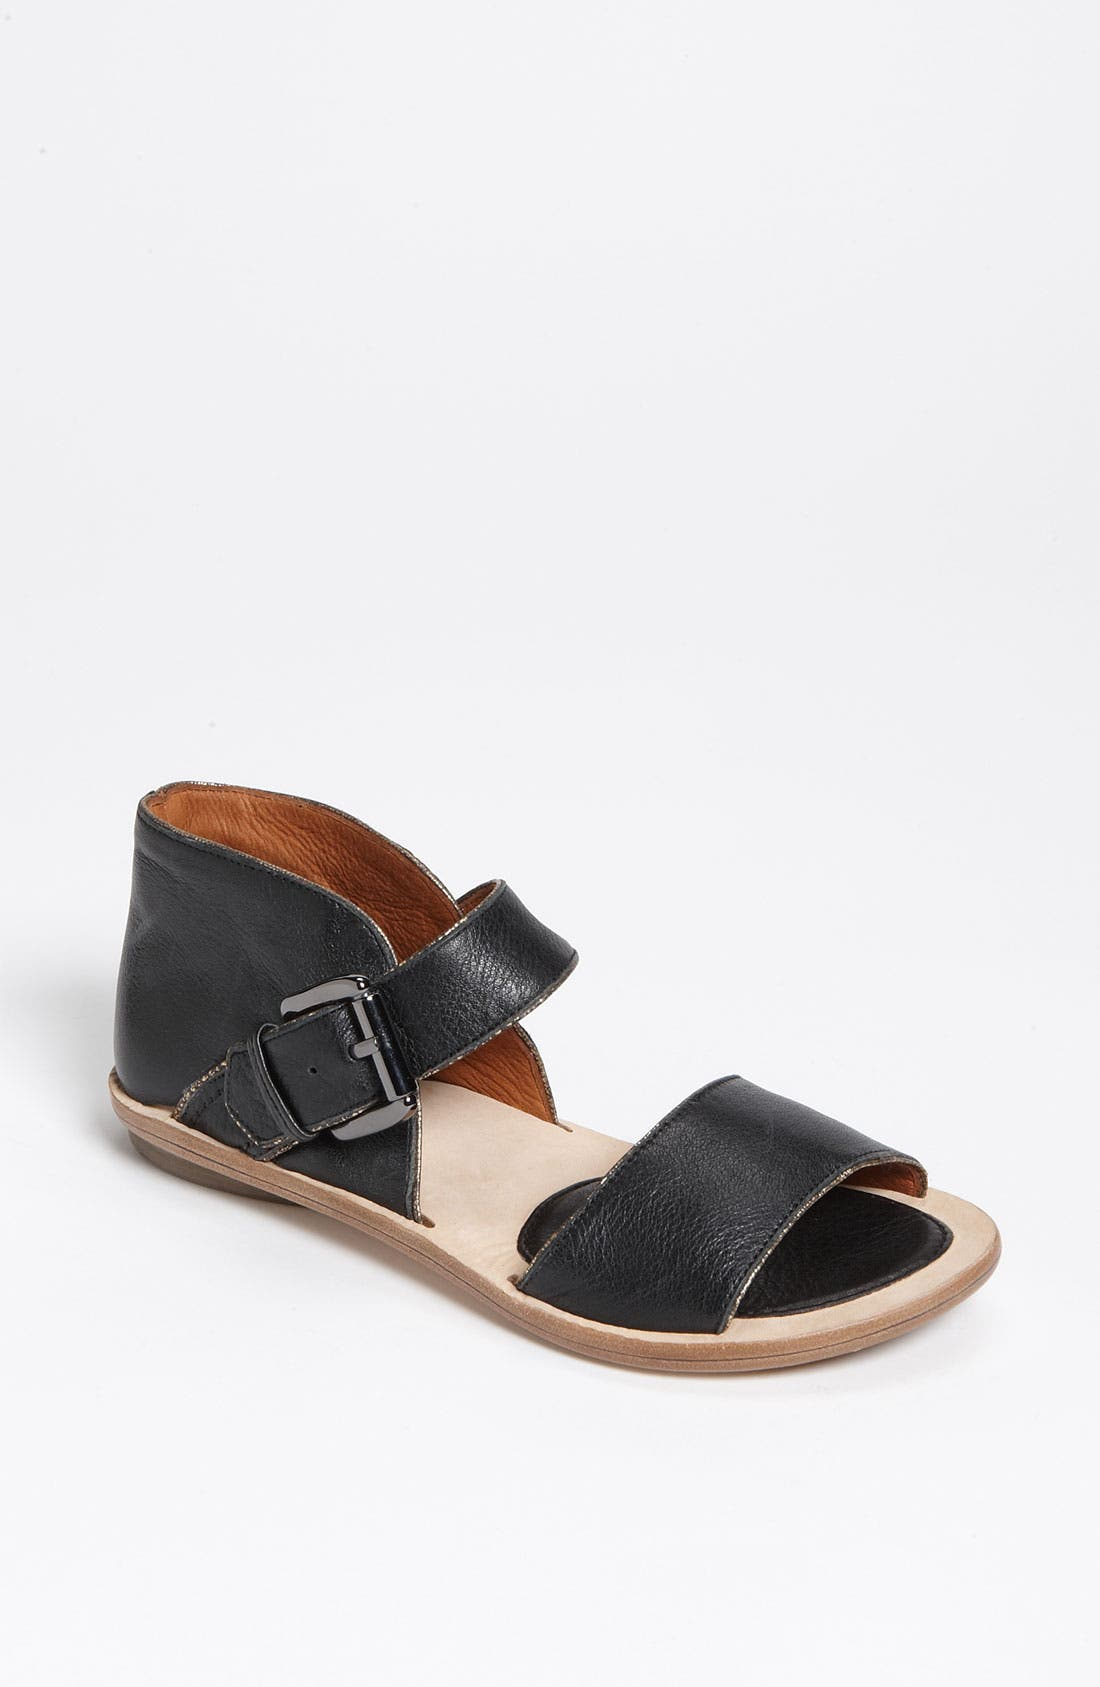 Main Image - Gentle Souls 'Up & Away' Sandal